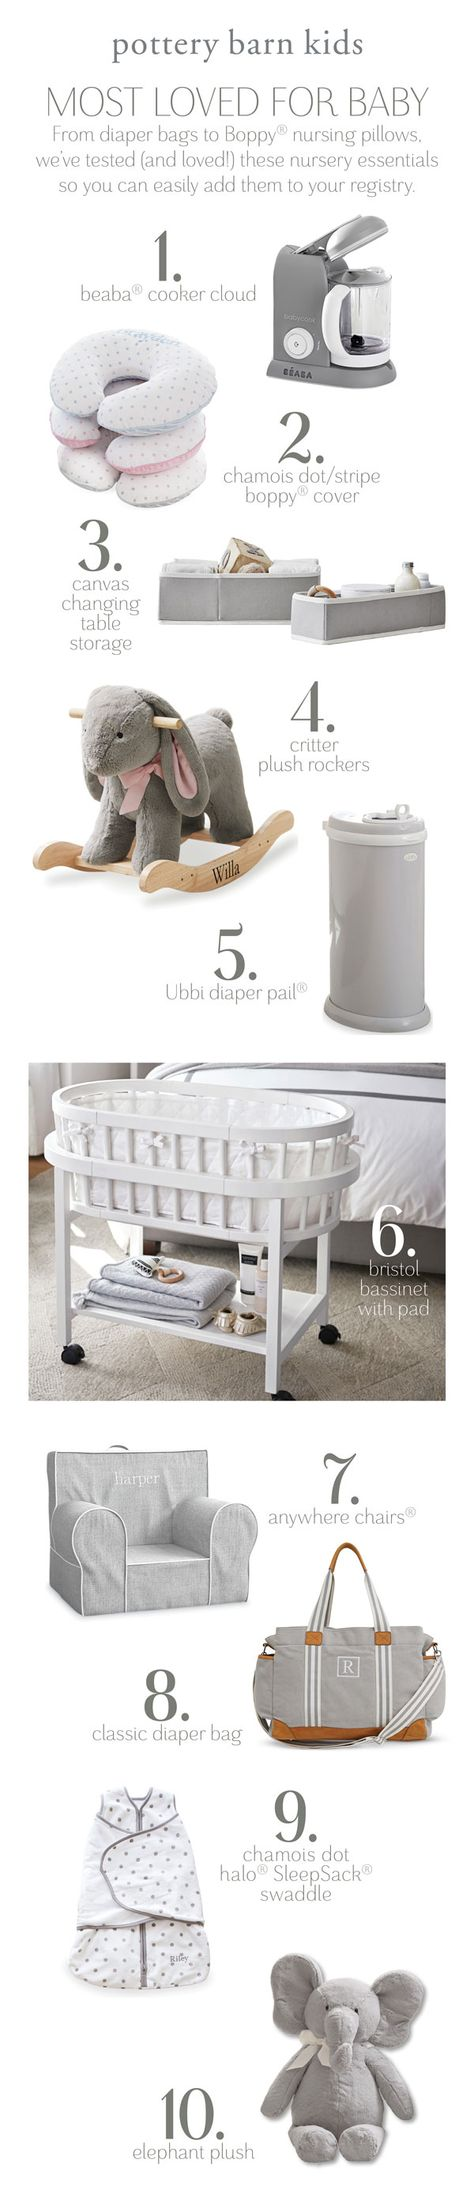 Most Loved for Baby - From diaper bags to Boppy nursing pillows, we've tested (and loved!) these nursery essentials so you can easily add them to your registry.